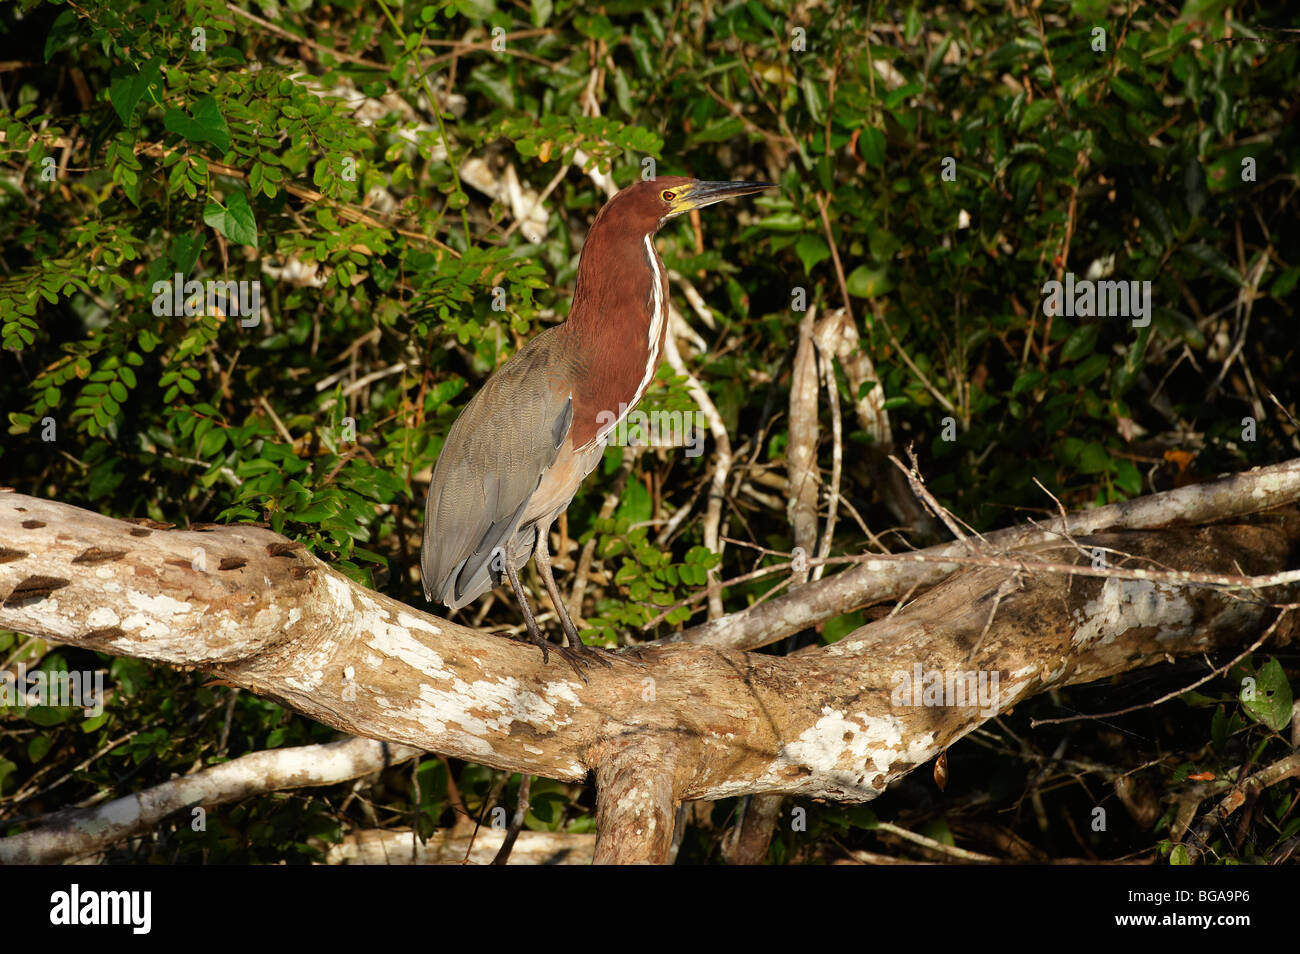 Rufescent Tiger Heron, Tigrisoma lineatum, PANTANAL, MATO GROSSO, Brasil, South America Stock Photo